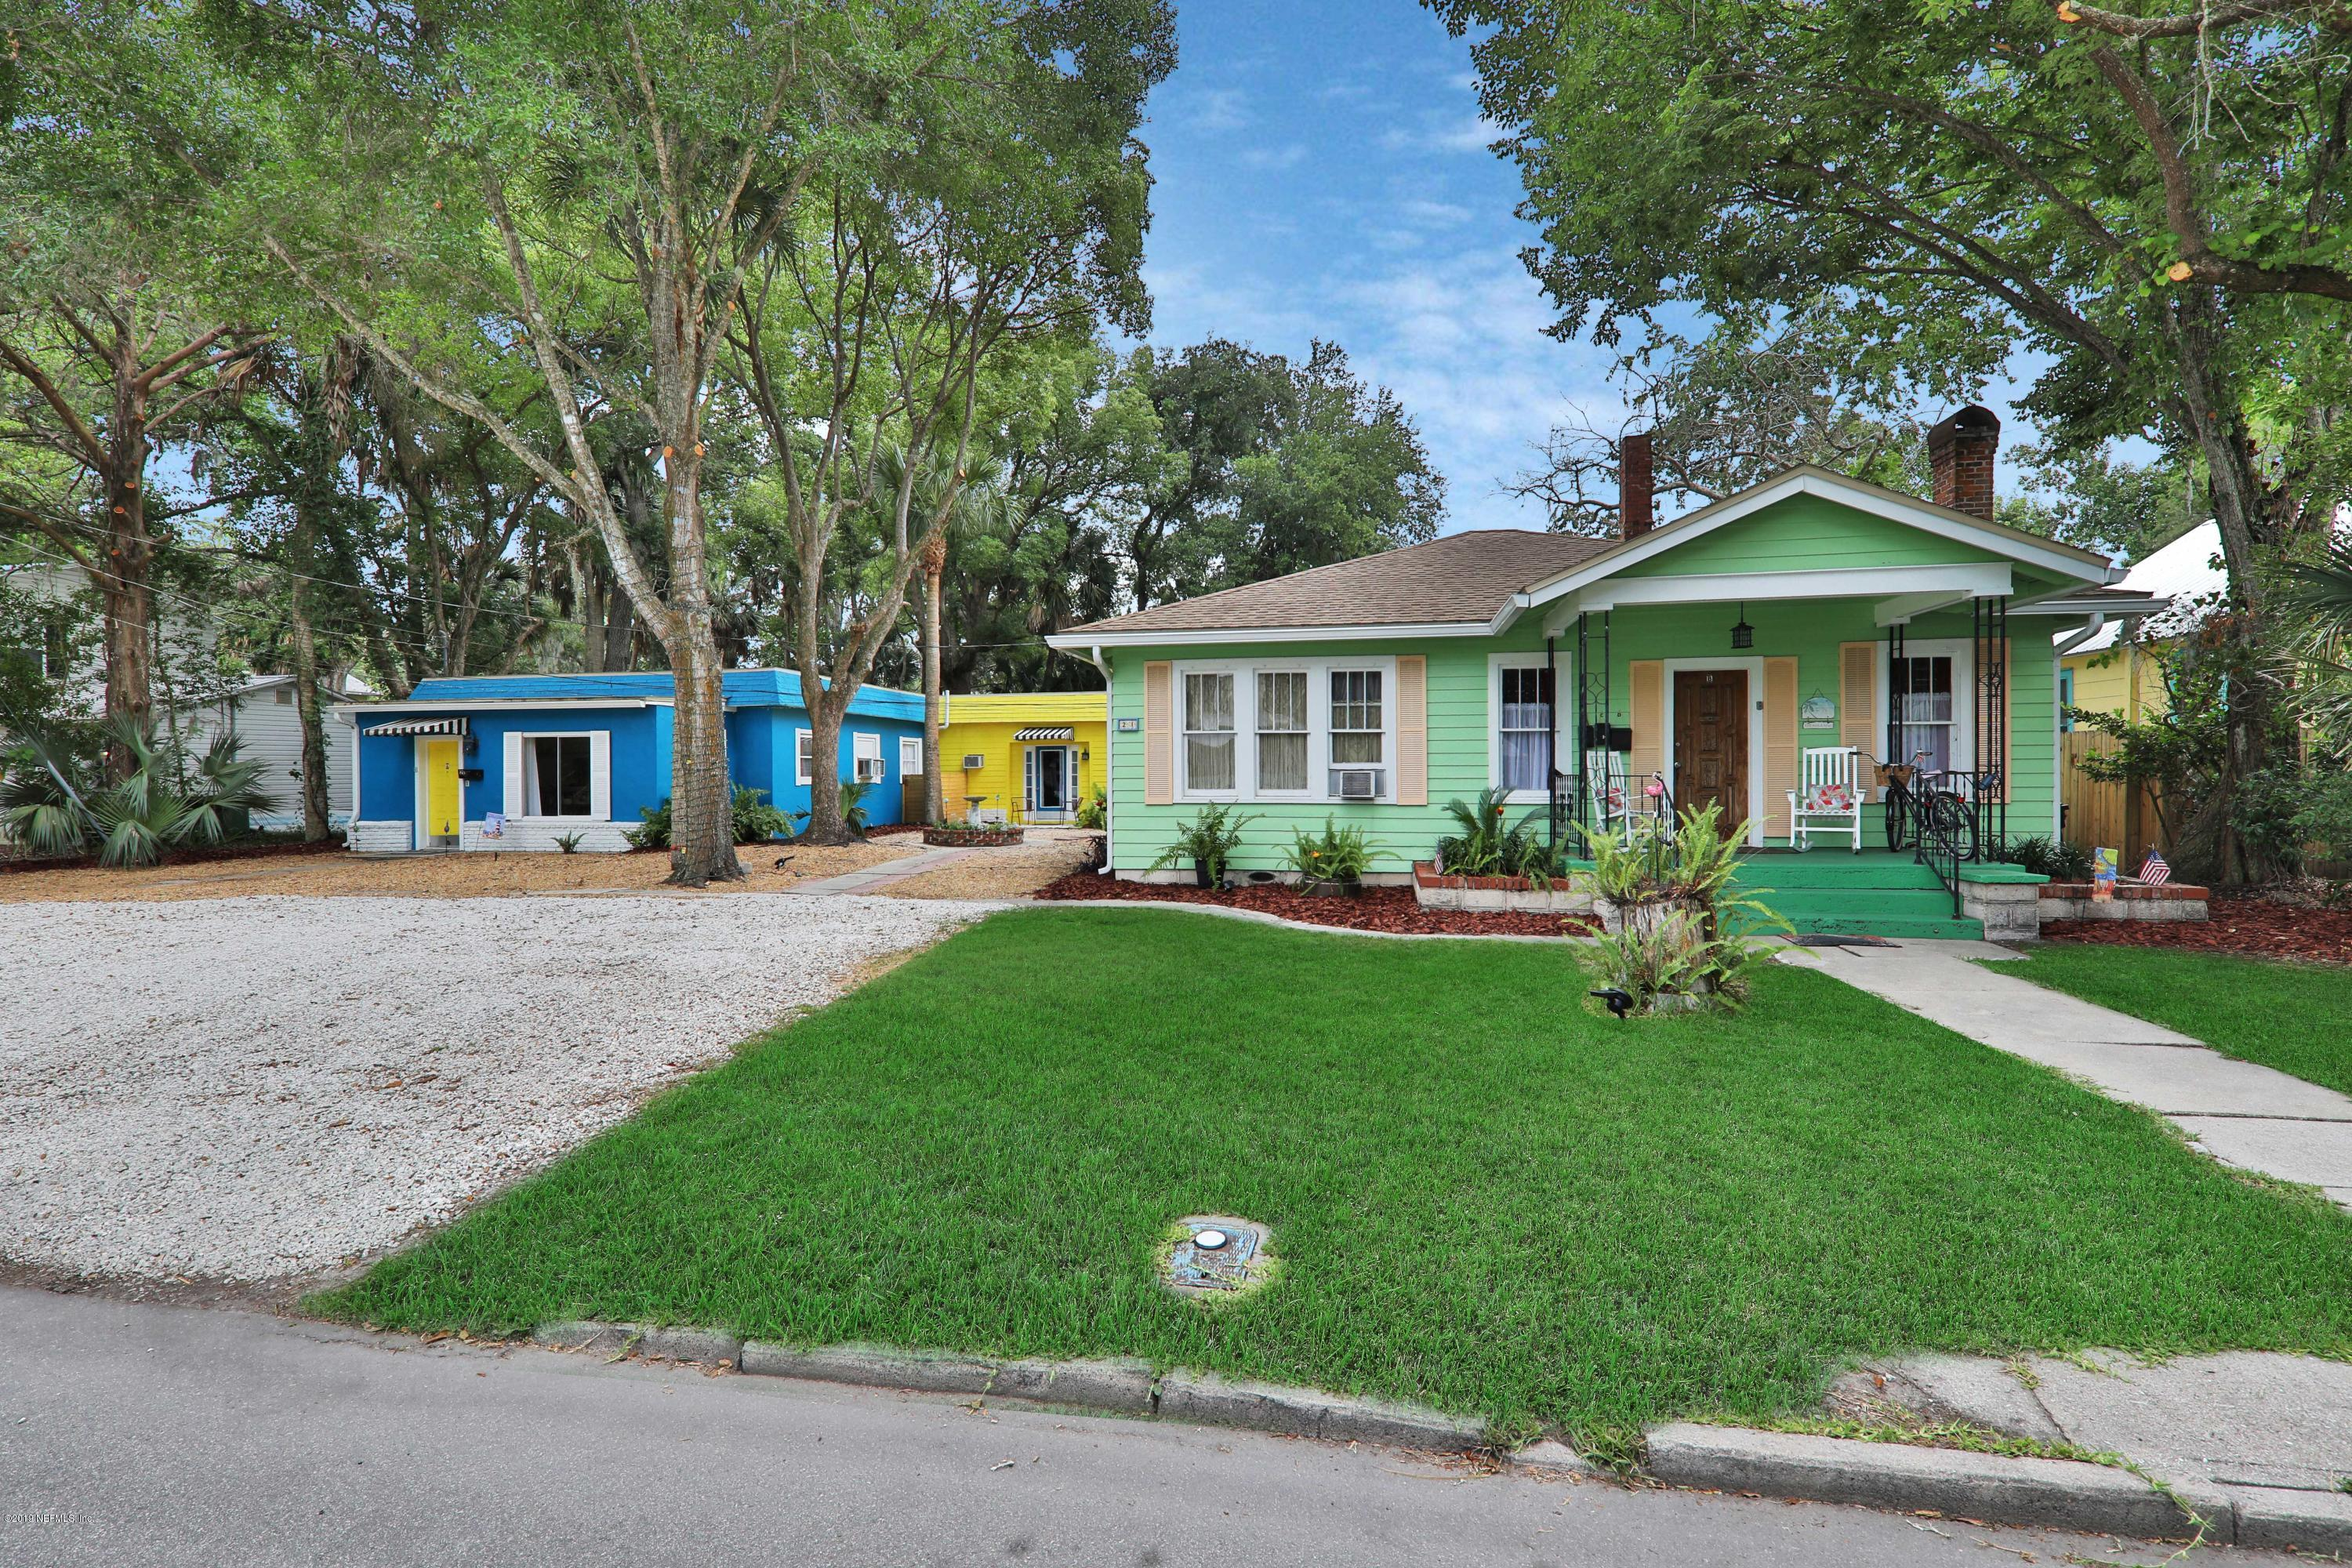 21 WILLIAMS, ST AUGUSTINE, FLORIDA 32084, 7 Bedrooms Bedrooms, ,4 BathroomsBathrooms,Investment / MultiFamily,For sale,WILLIAMS,1037744